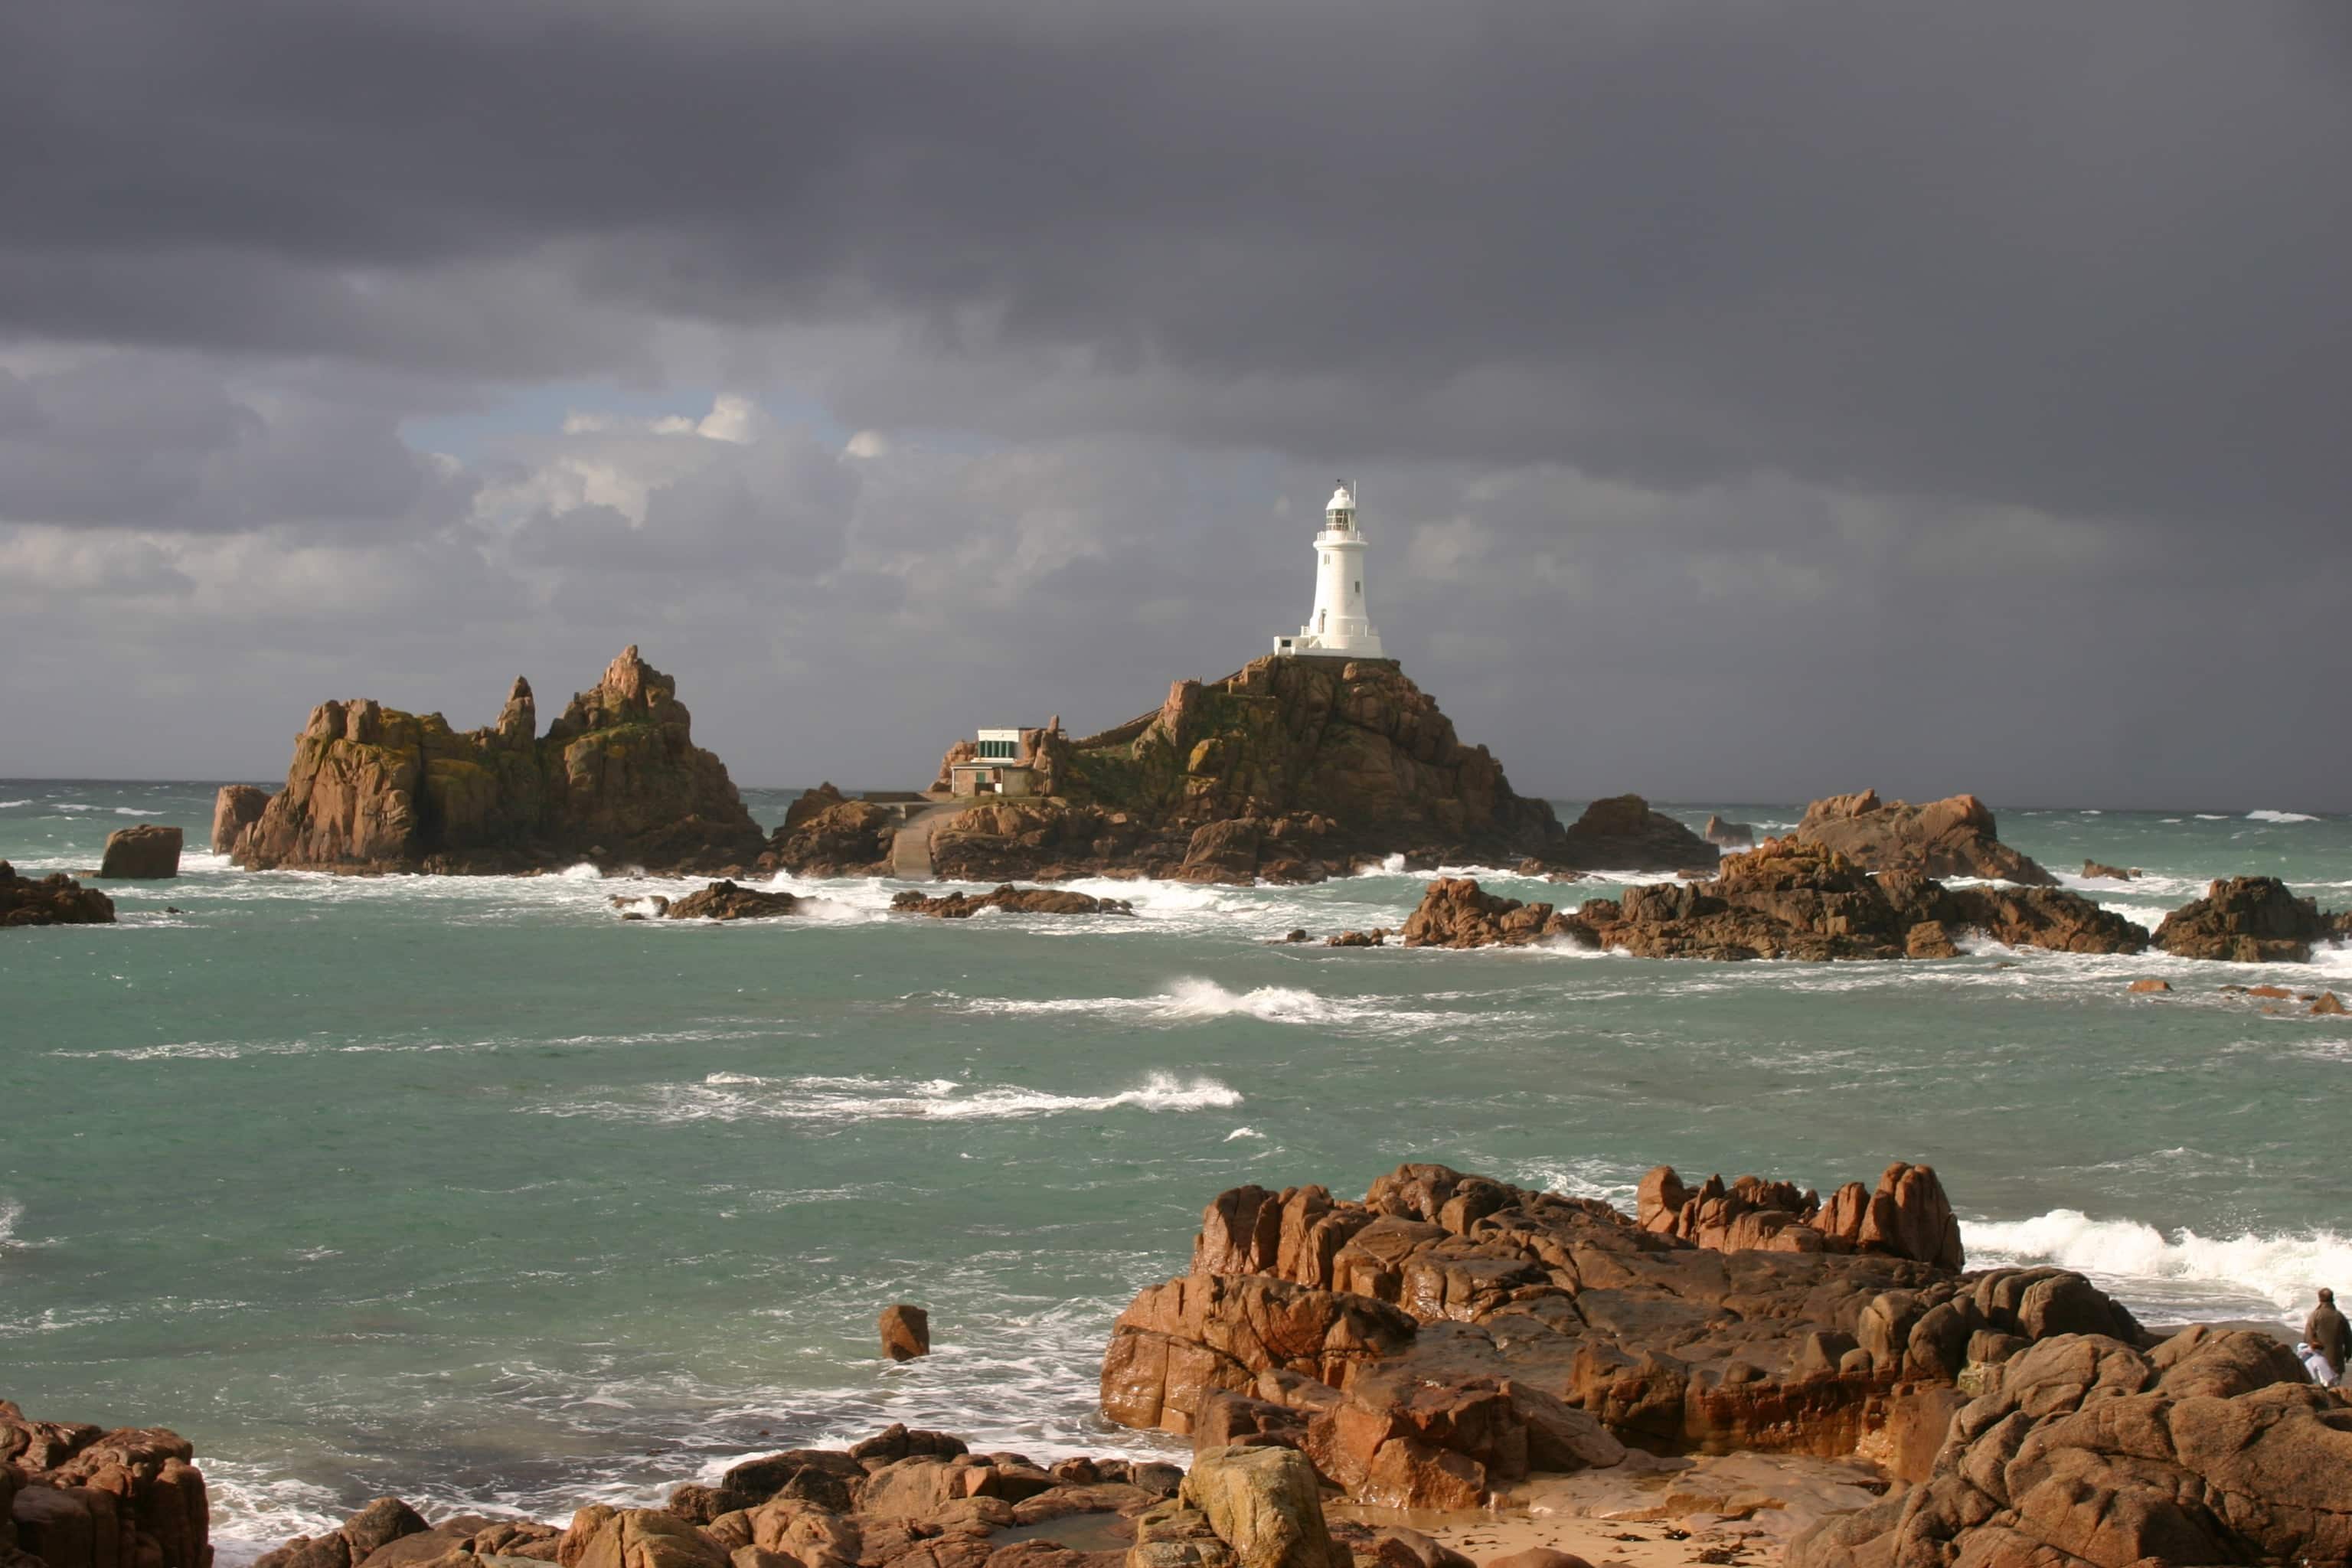 La Corbière Lighthouse, situated on a tidal rock outside Jersey, England